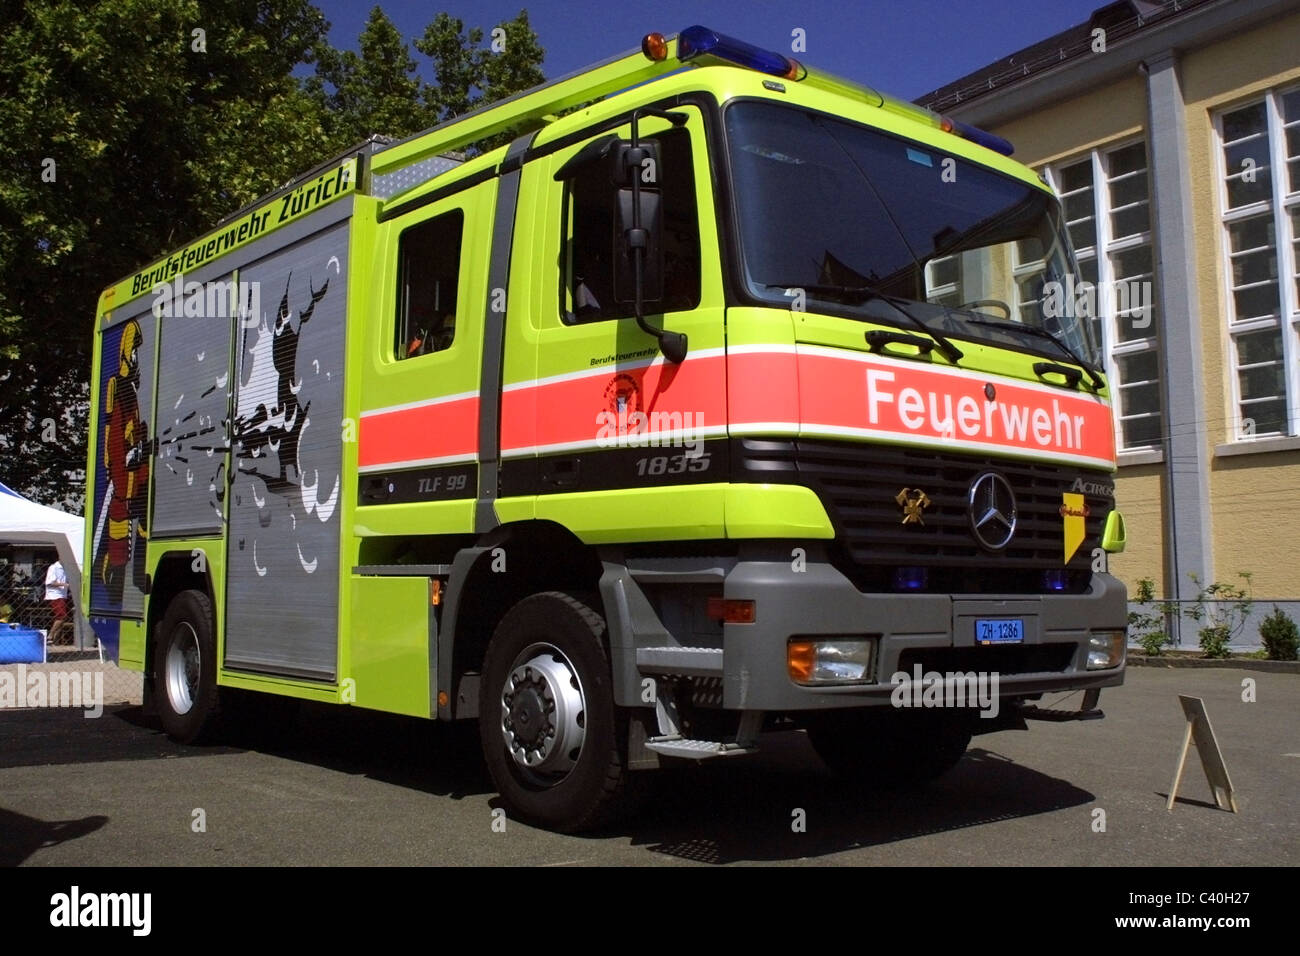 Awesome Mercedes Fire Truck   Stock Image